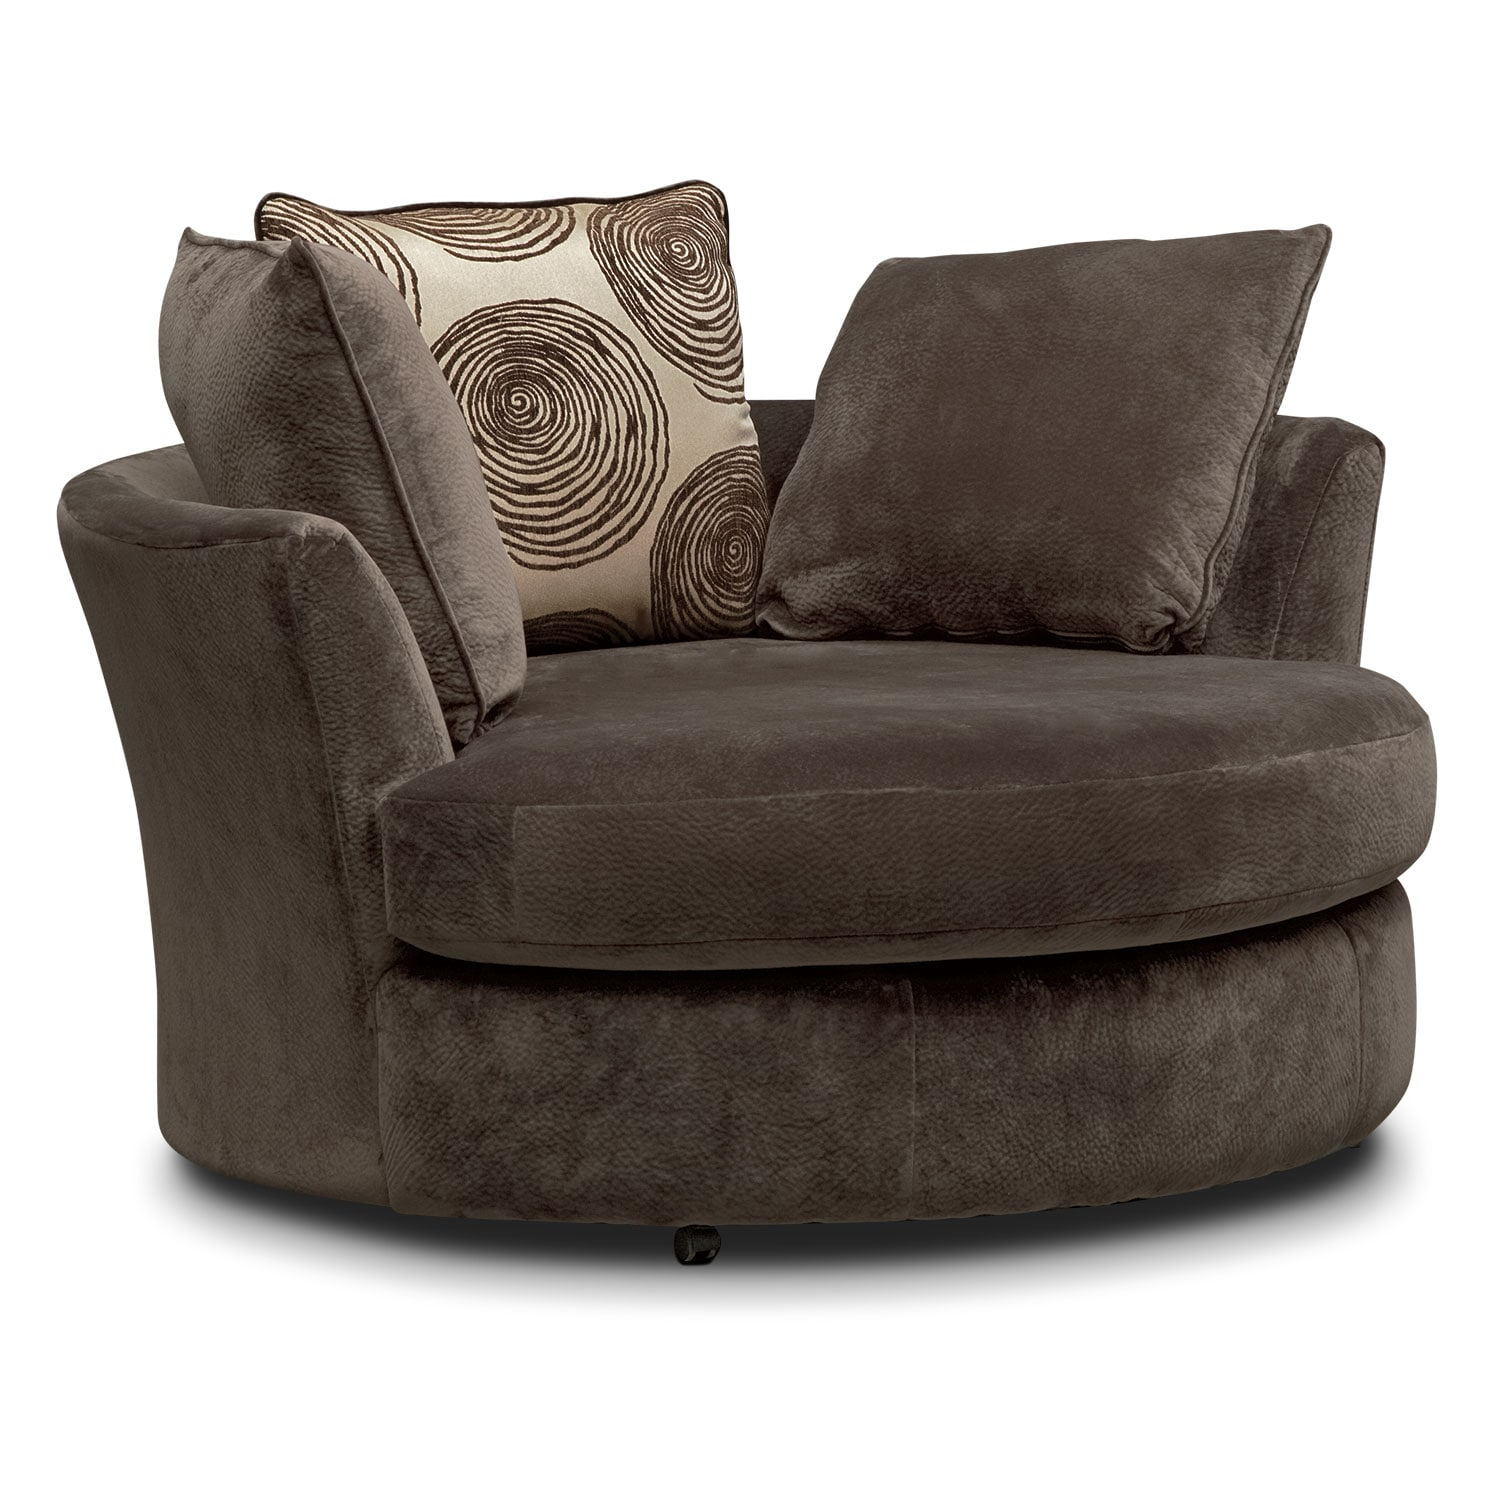 cordelle swivel chair - chocolate | value city furniture and